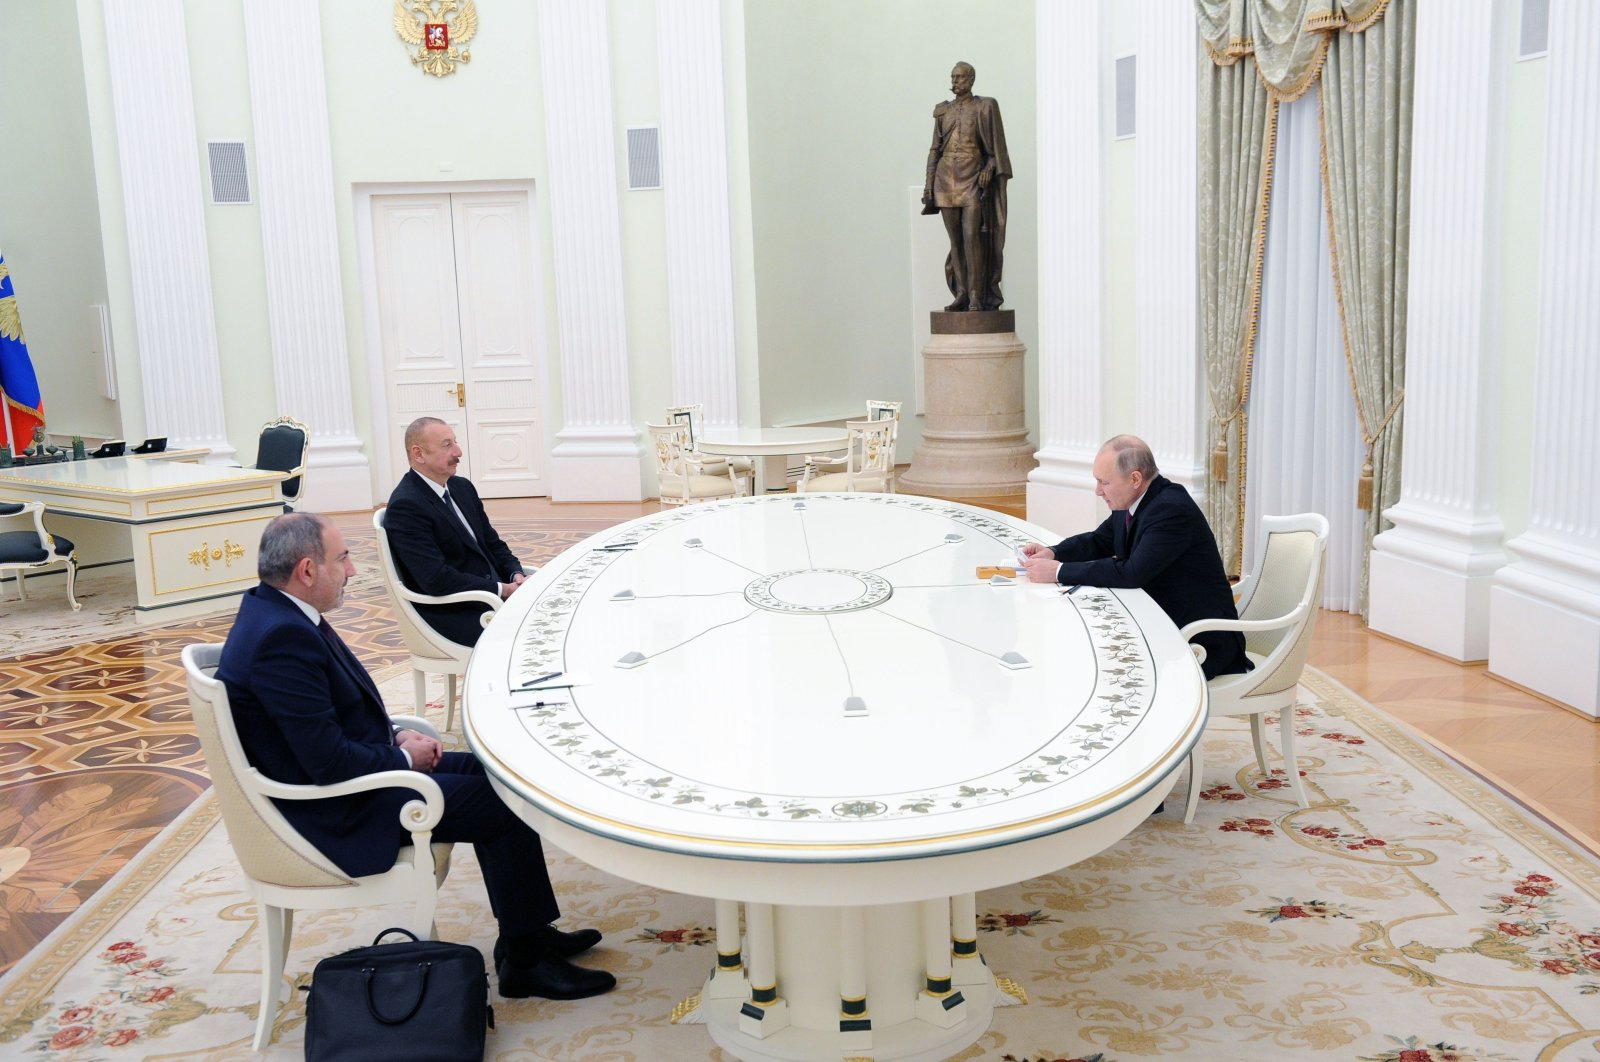 Russian President Vladimir Putin (R) holds a meeting with Armenian Prime Minister Nikol Pashinian (L) and Azerbaijani President Ilham Aliyev over the Nagorno-Karabakh region's future at the Kremlin in Moscow, Russia, Jan. 11, 2021. (AFP Photo)